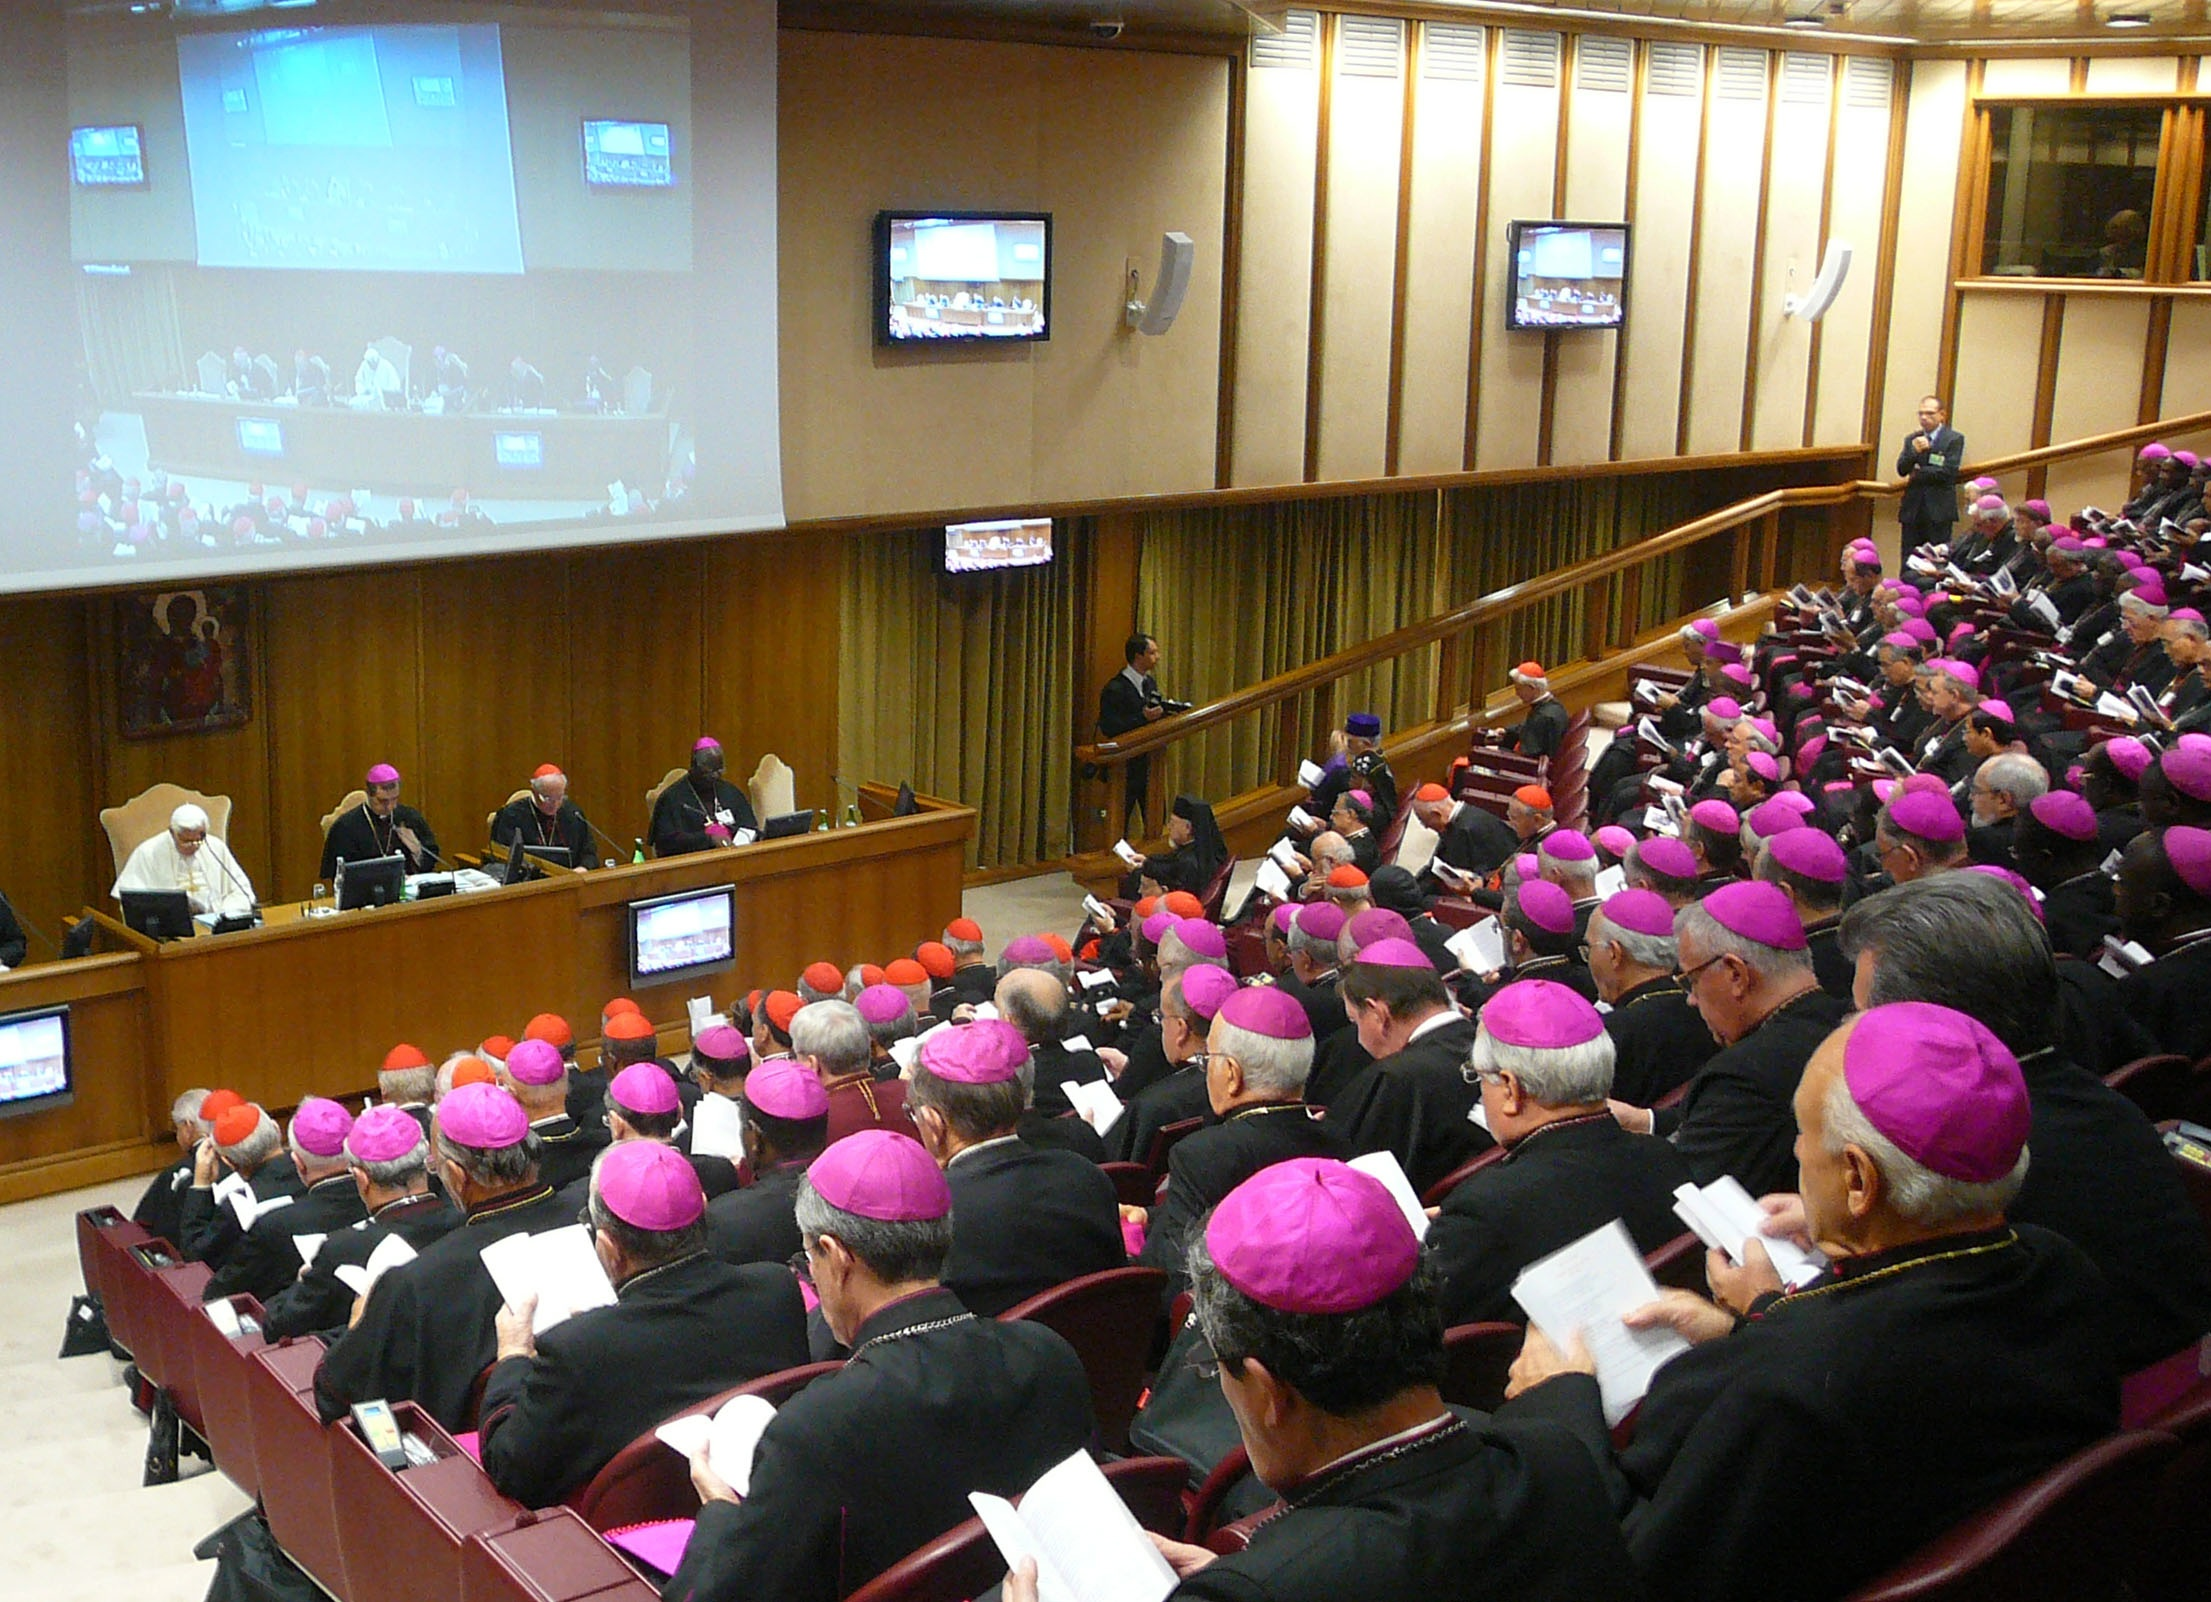 synod of bishops The meaning of a synod the synod of bishops was established by blessed pope paul vi near the conclusion of the second vatican council in 1965 the synod itself is an advisory body for the.